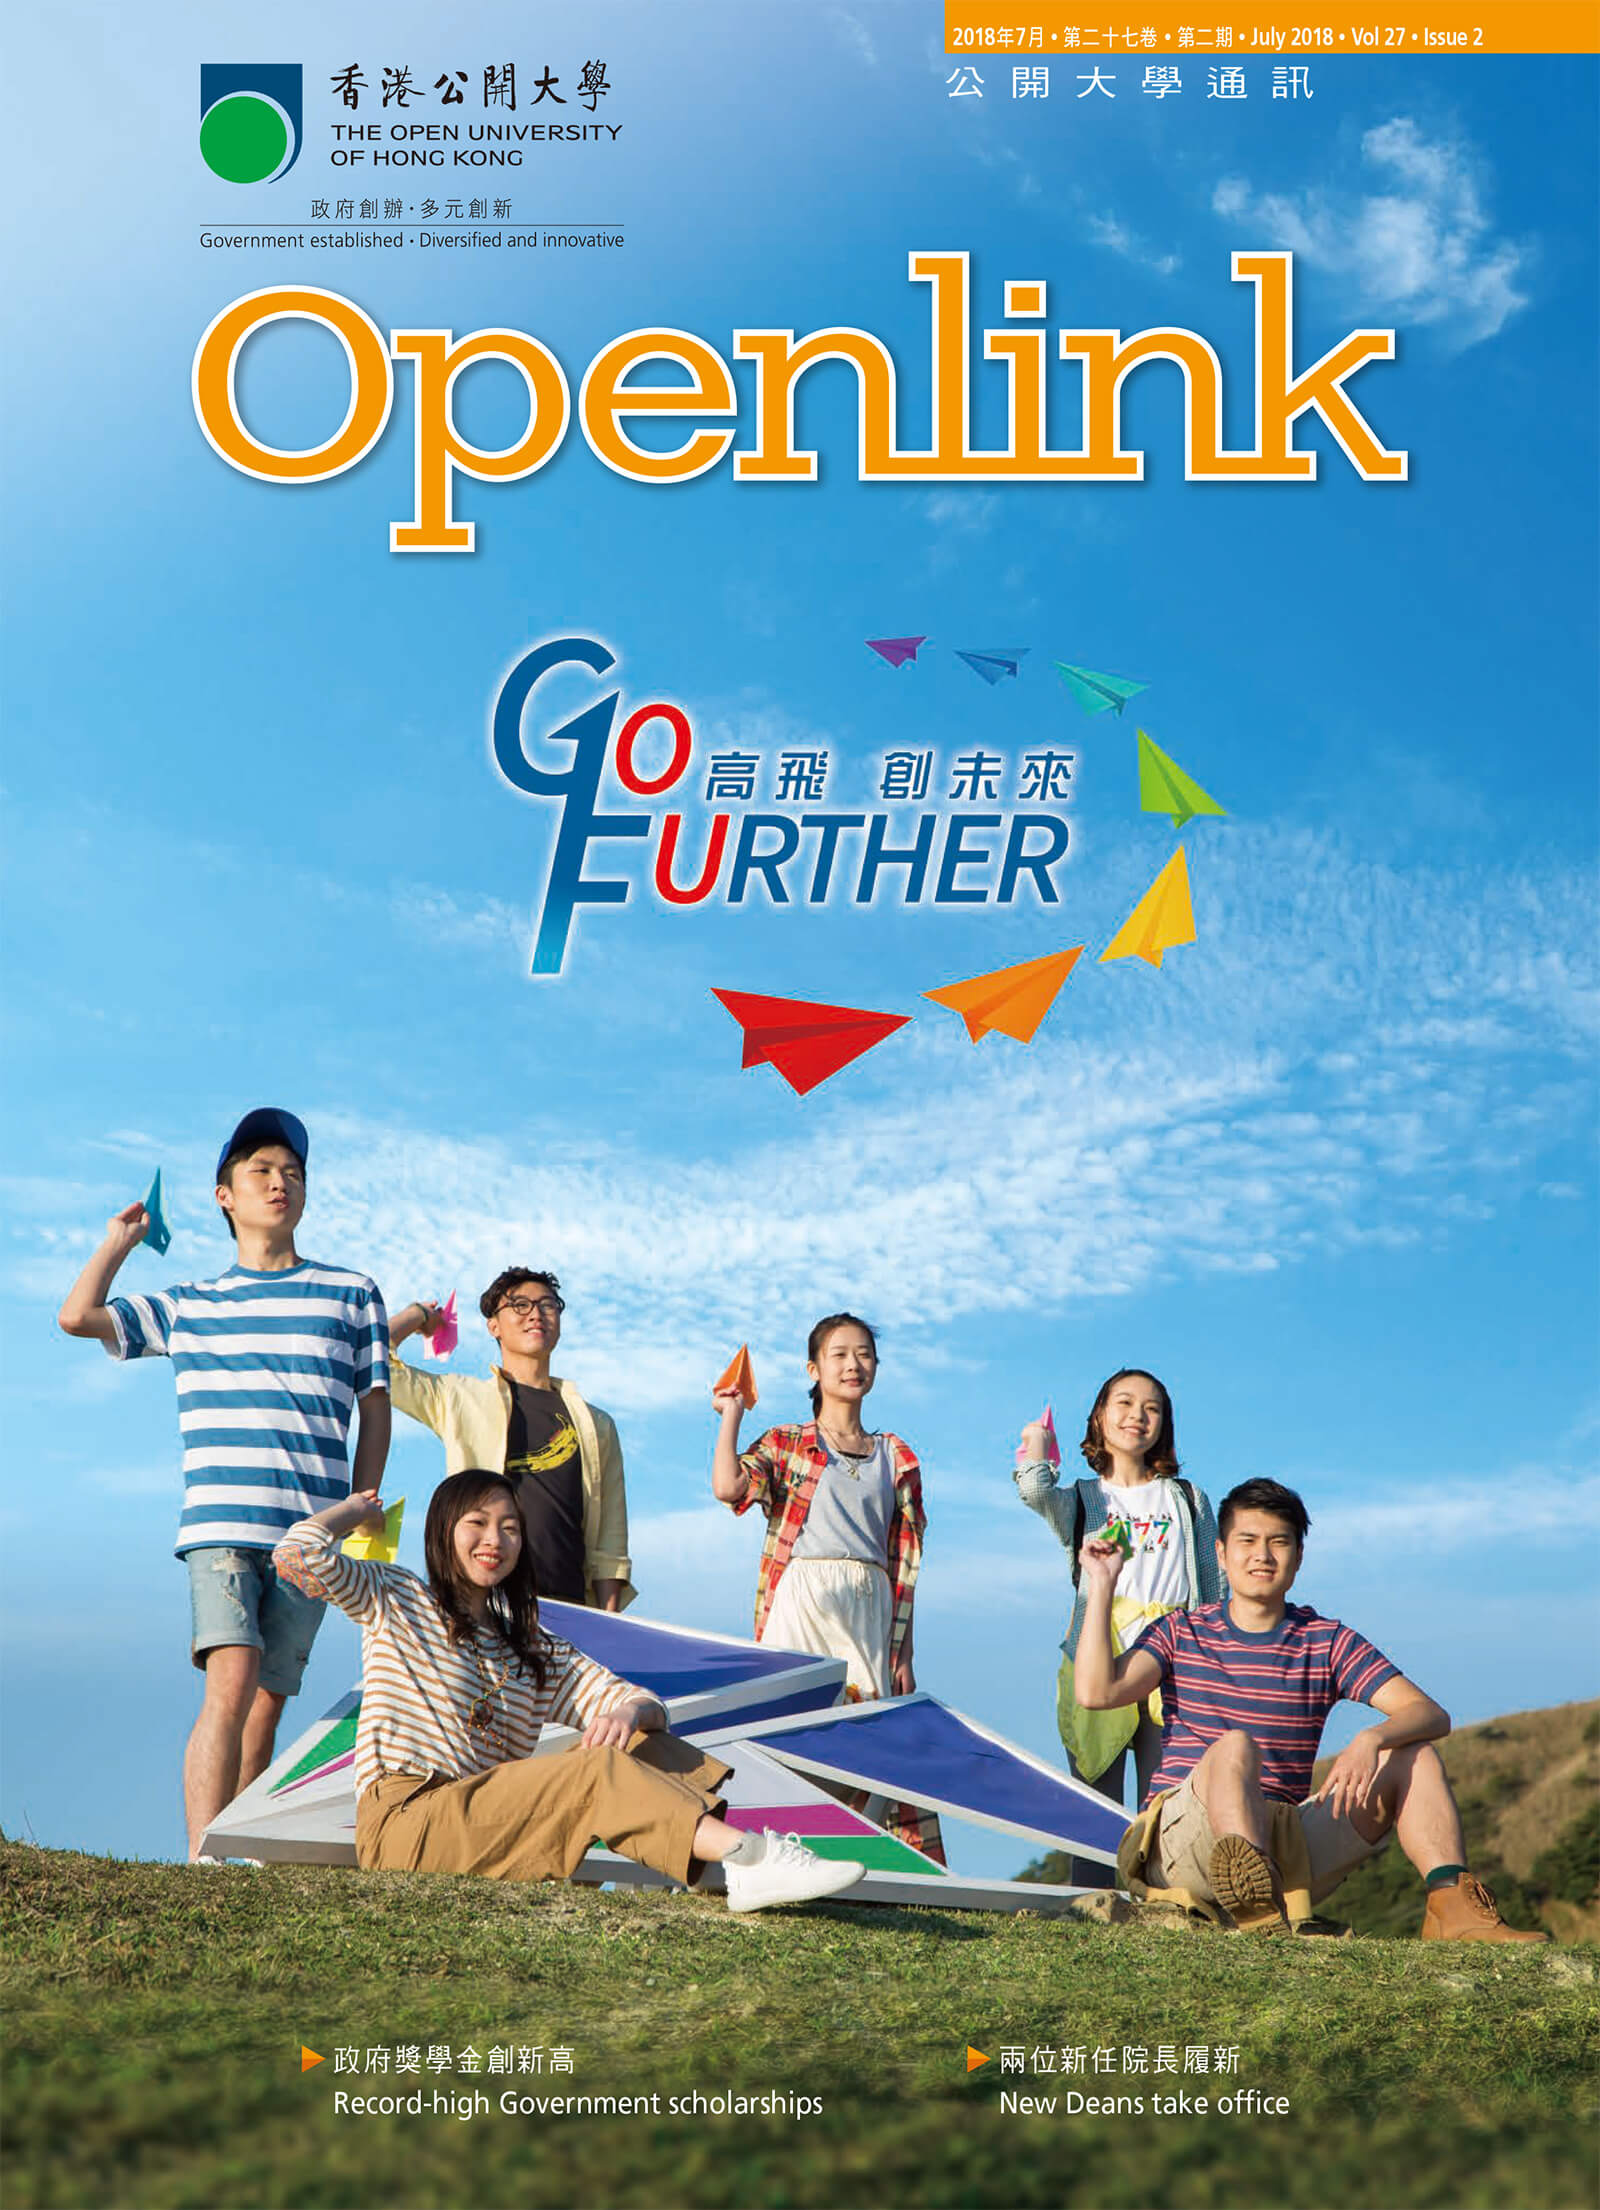 Openlink July 2018‧Vol 27‧Issue 2 | The Open University of Hong Kong